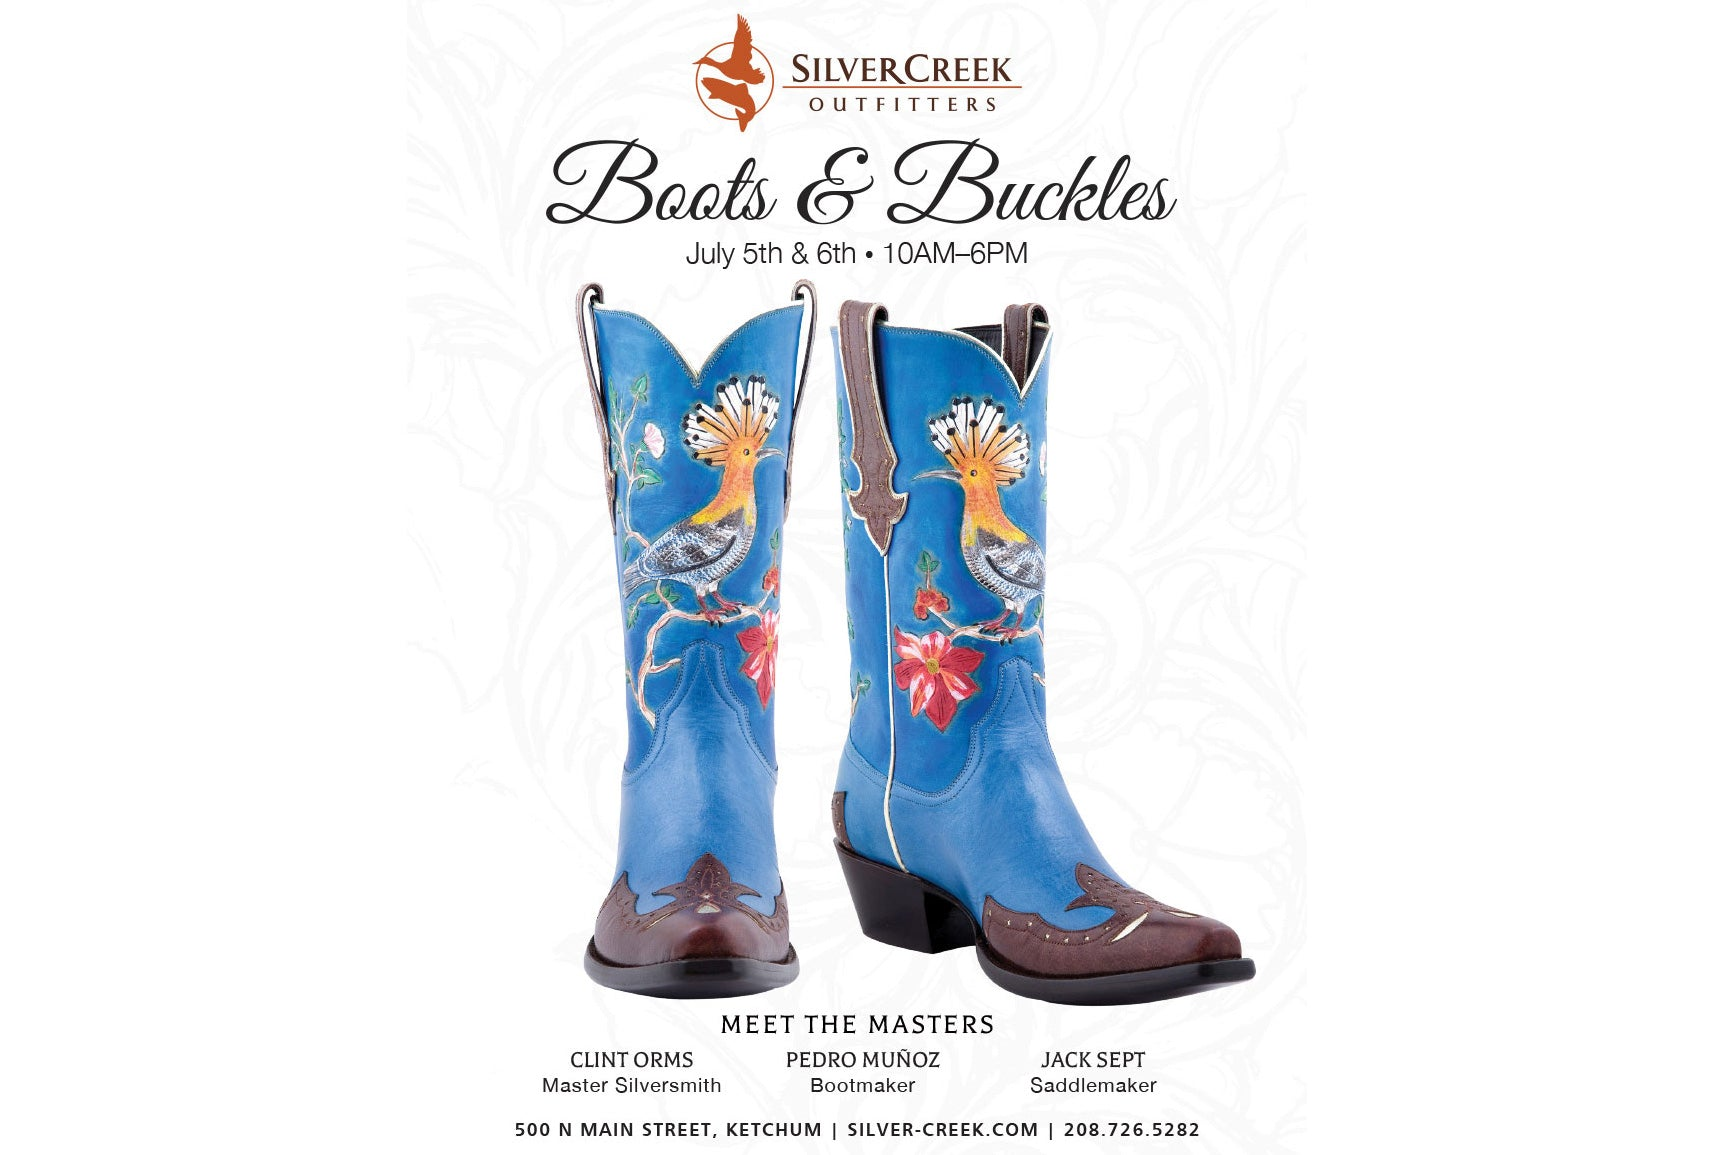 2019 Boots & Buckles – Meet The Masters.